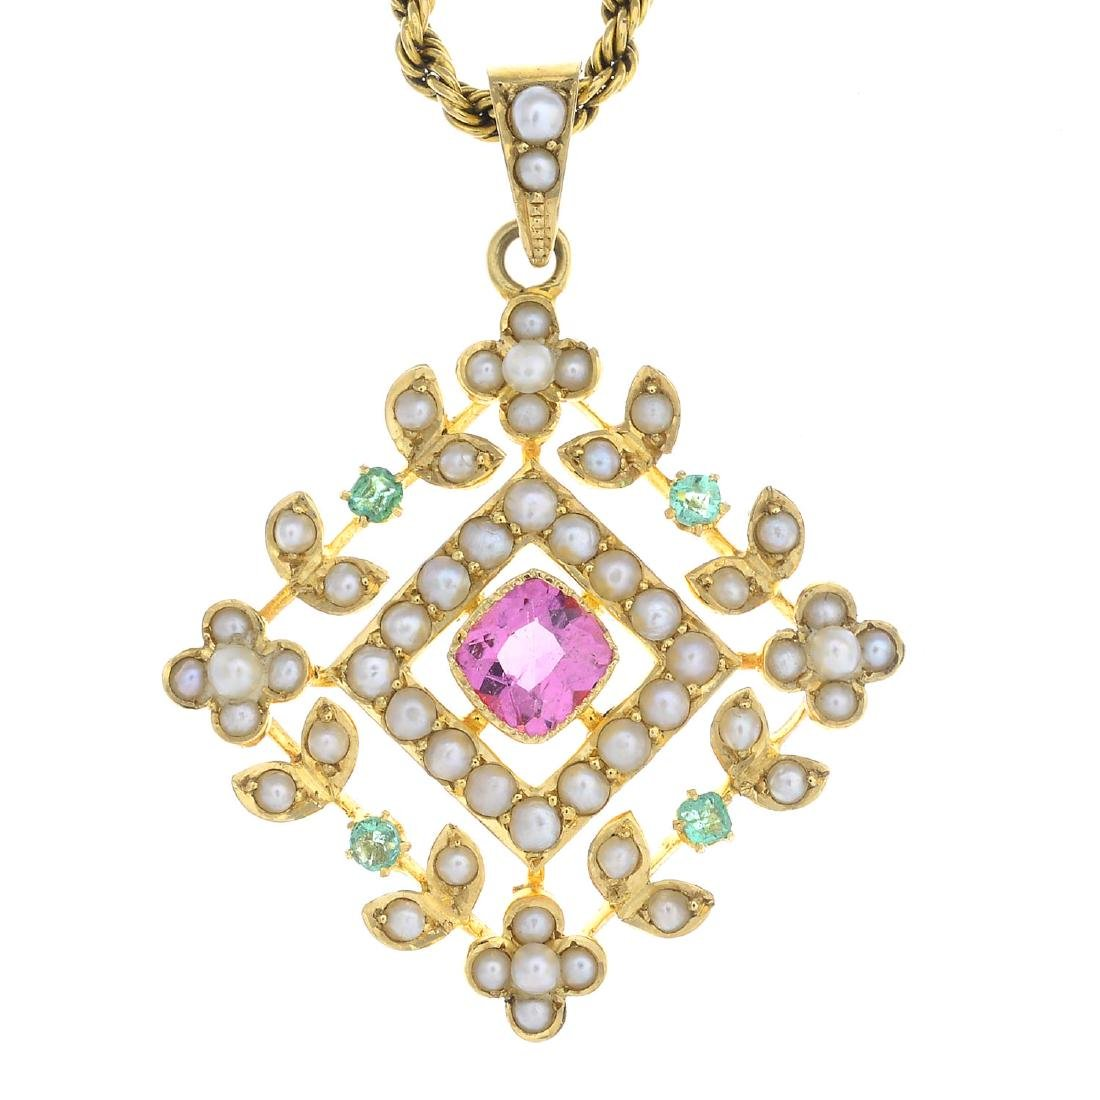 An early 20th century 15ct gold gem-set pendant. Of